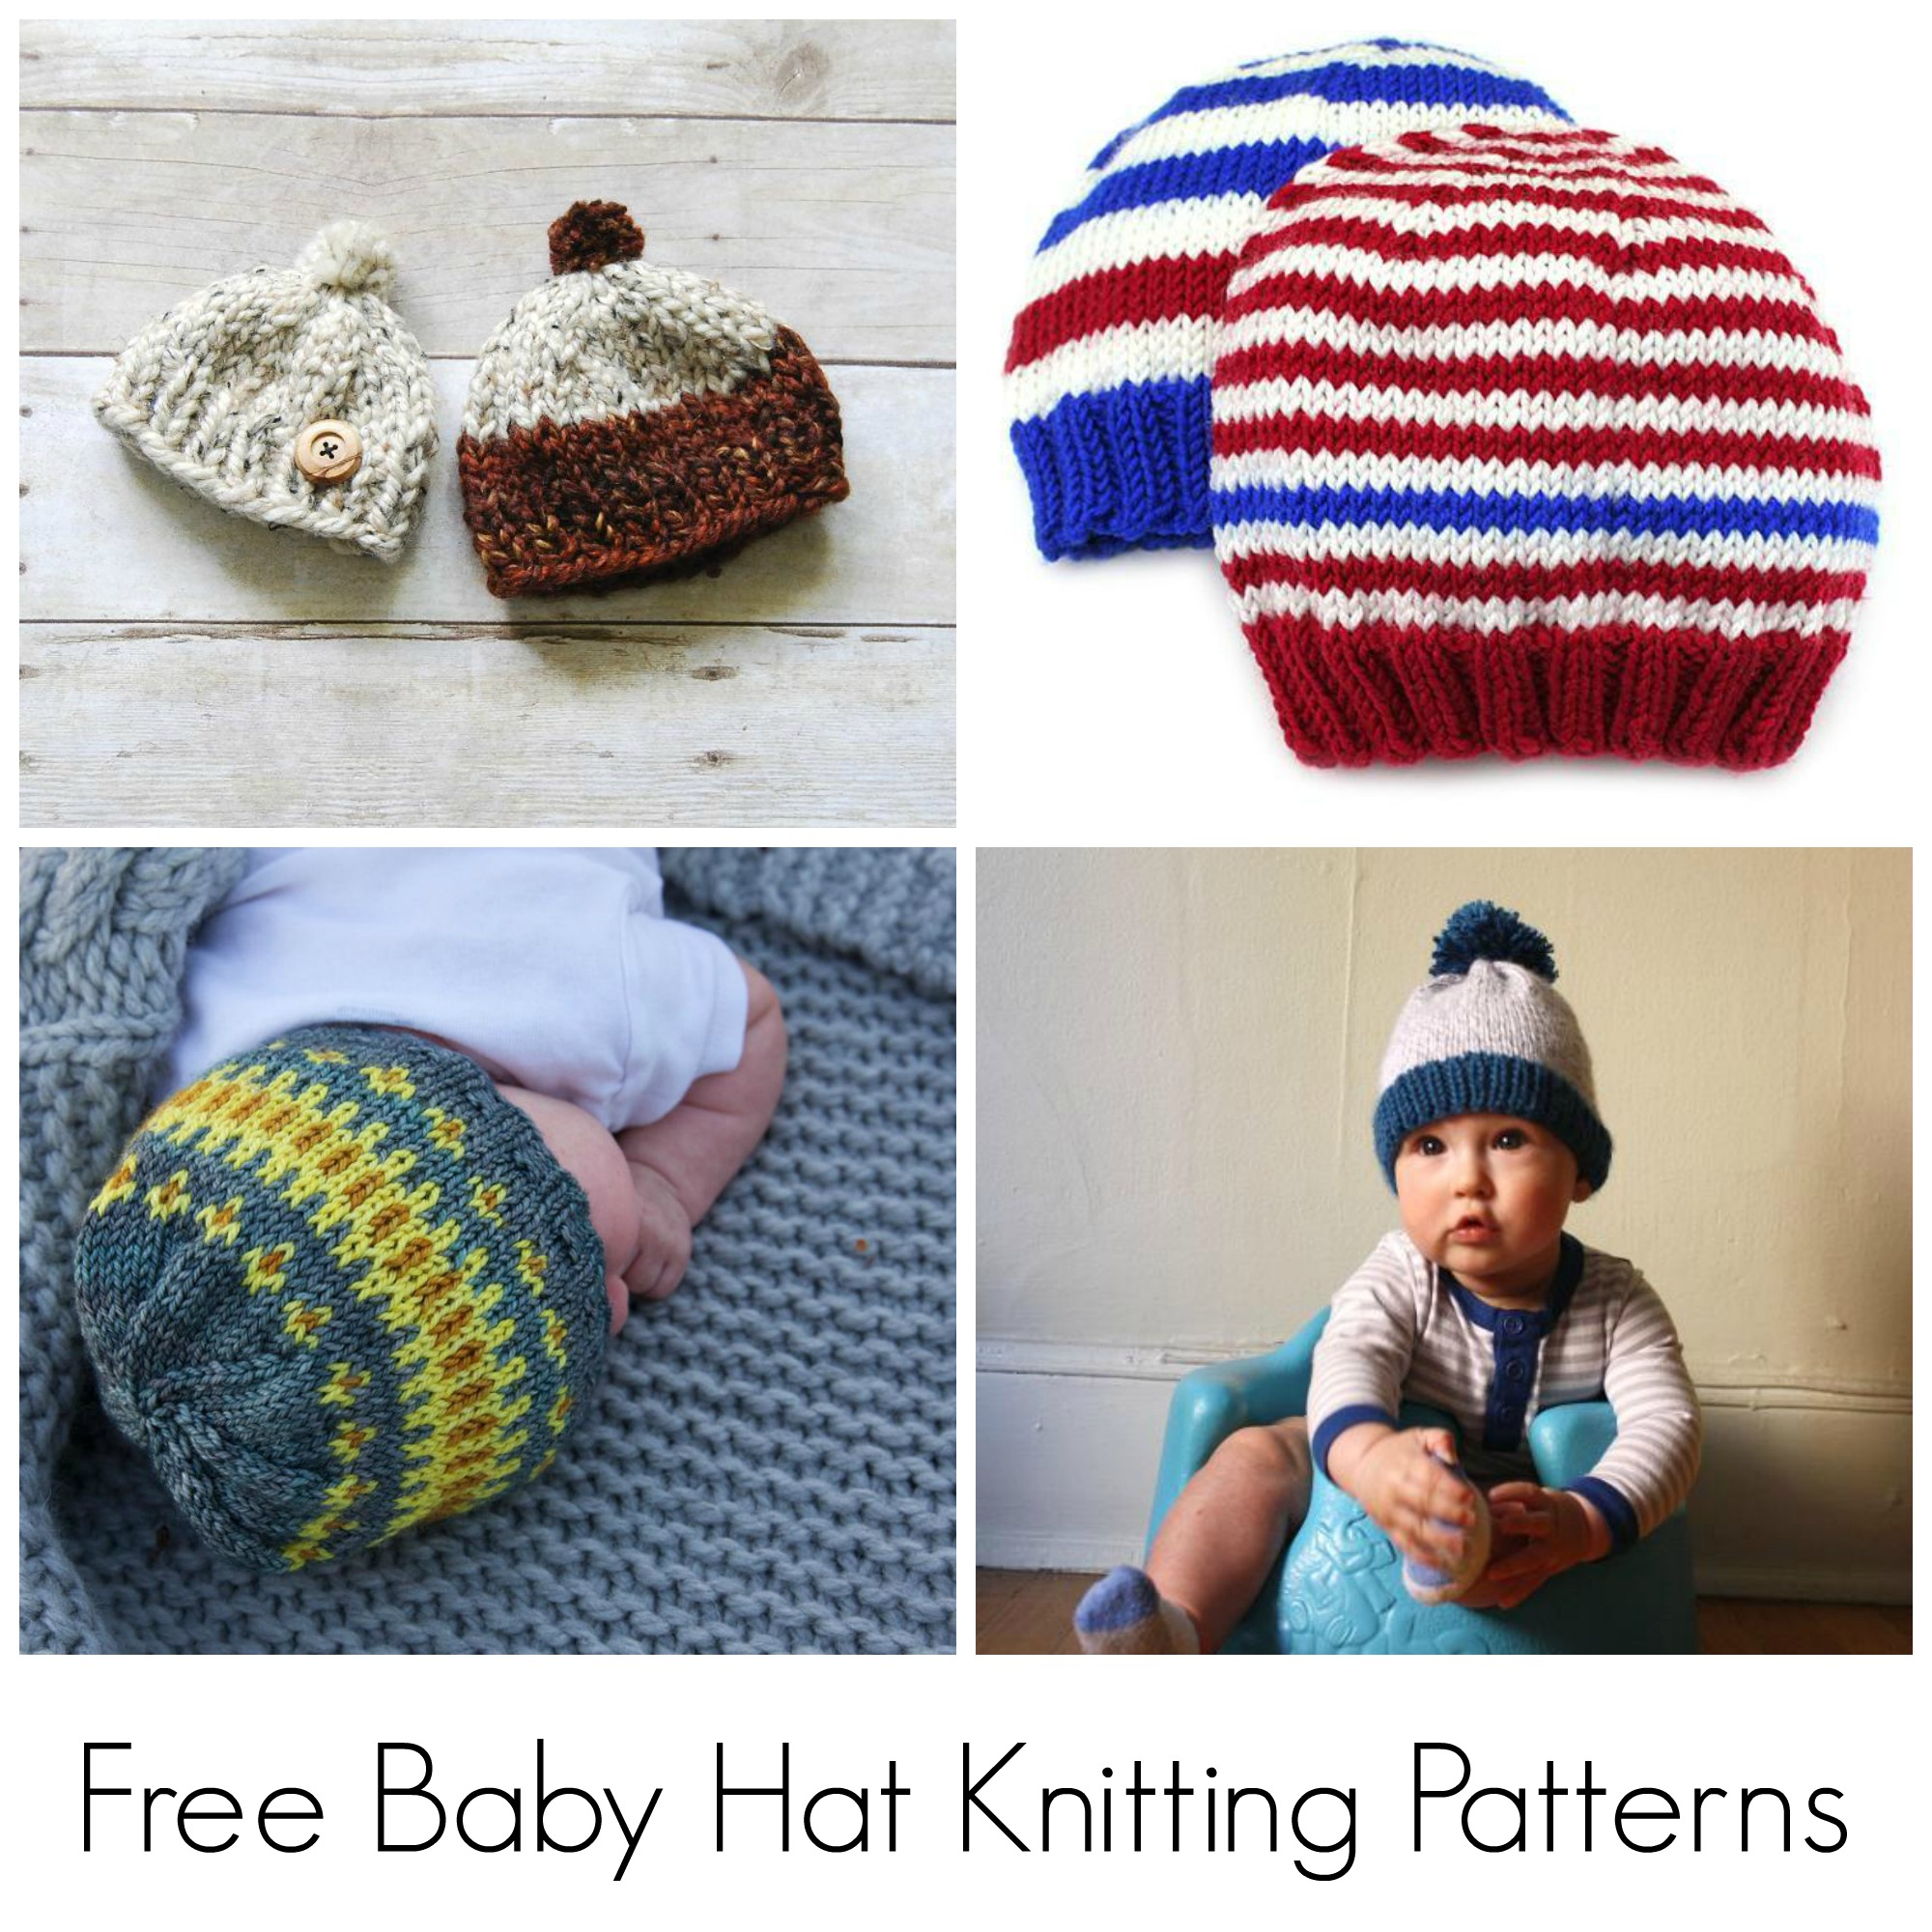 Beginner Baby Knitting Patterns 10 Free Knitting Patterns For Ba Hats On Craftsy